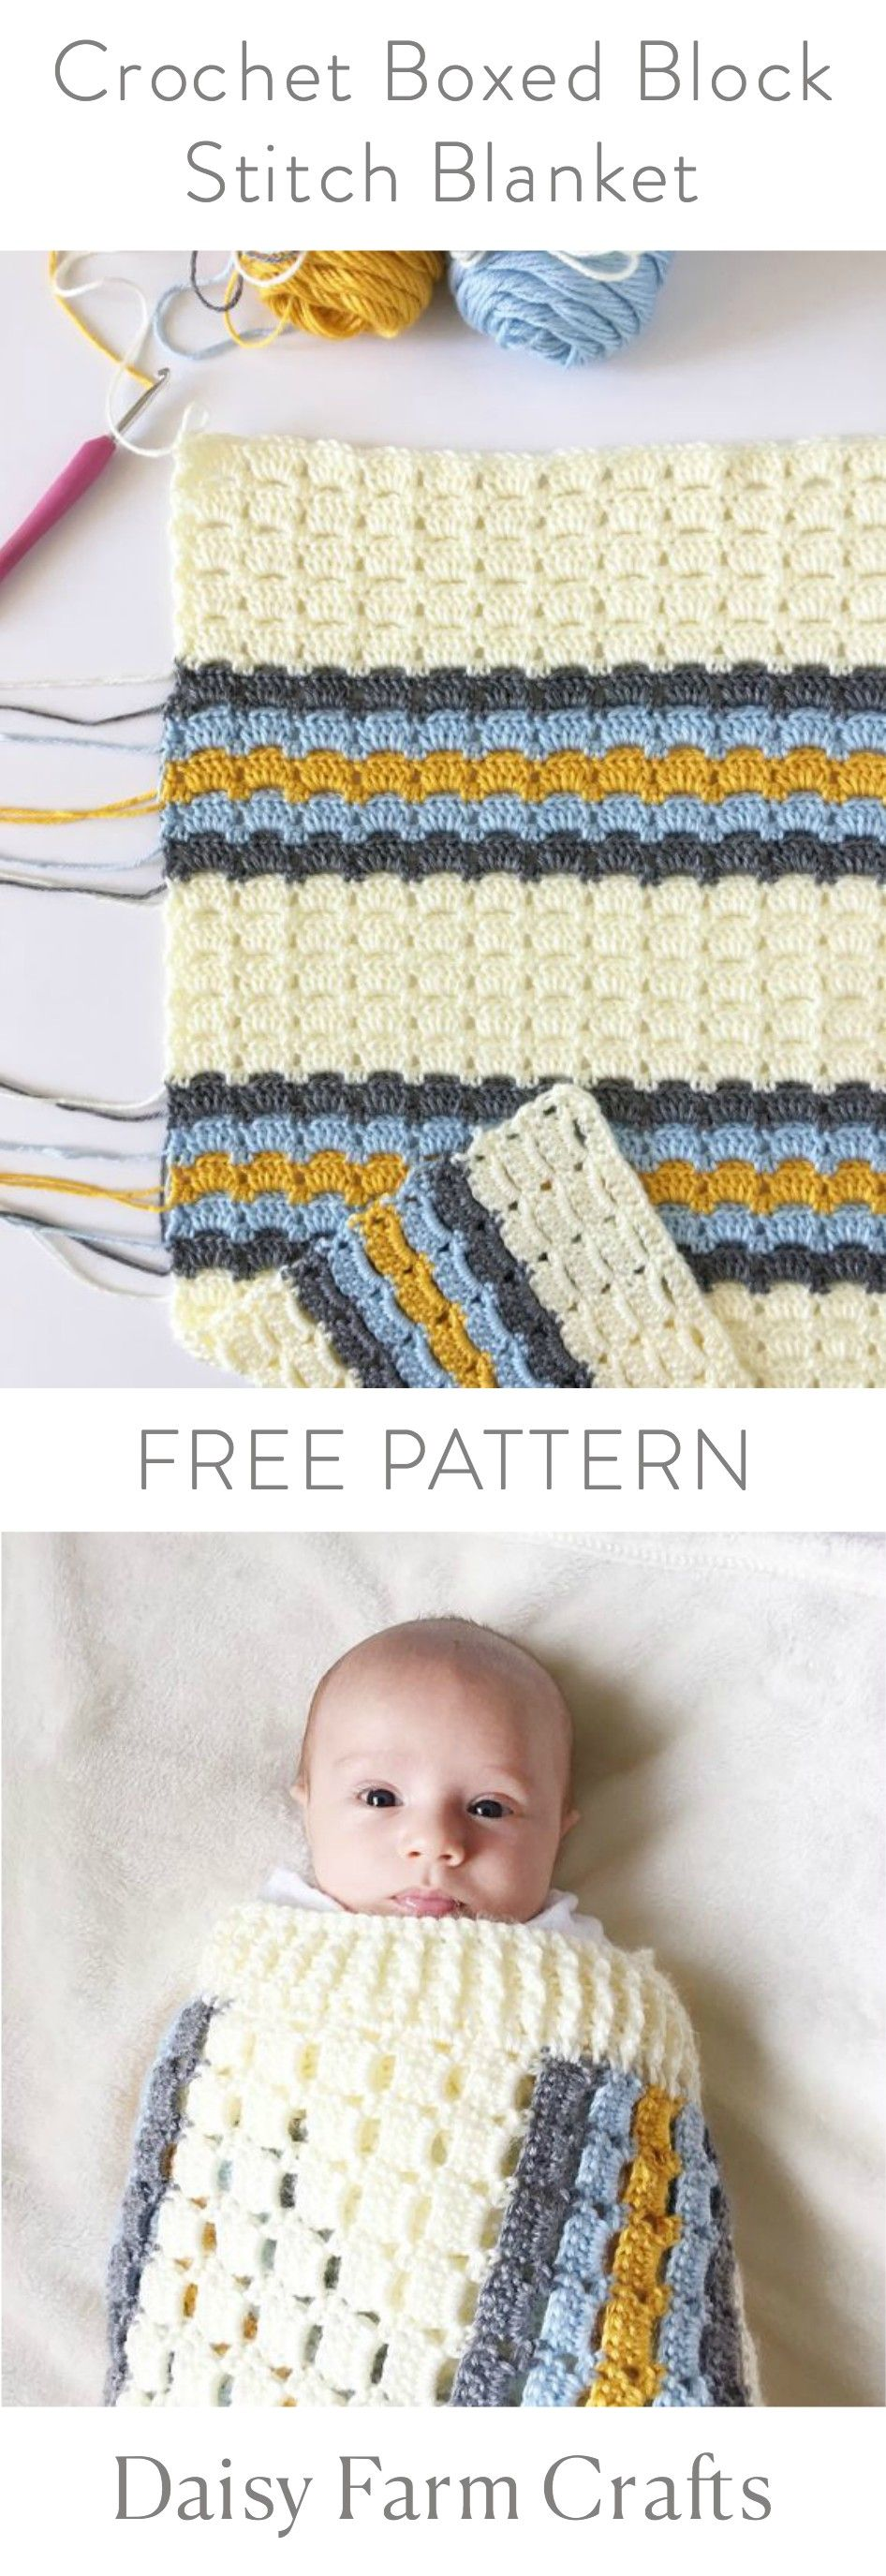 FREE PATTERN - Crochet Boxed Block Stitch Blanket | Crochet and Wool ...